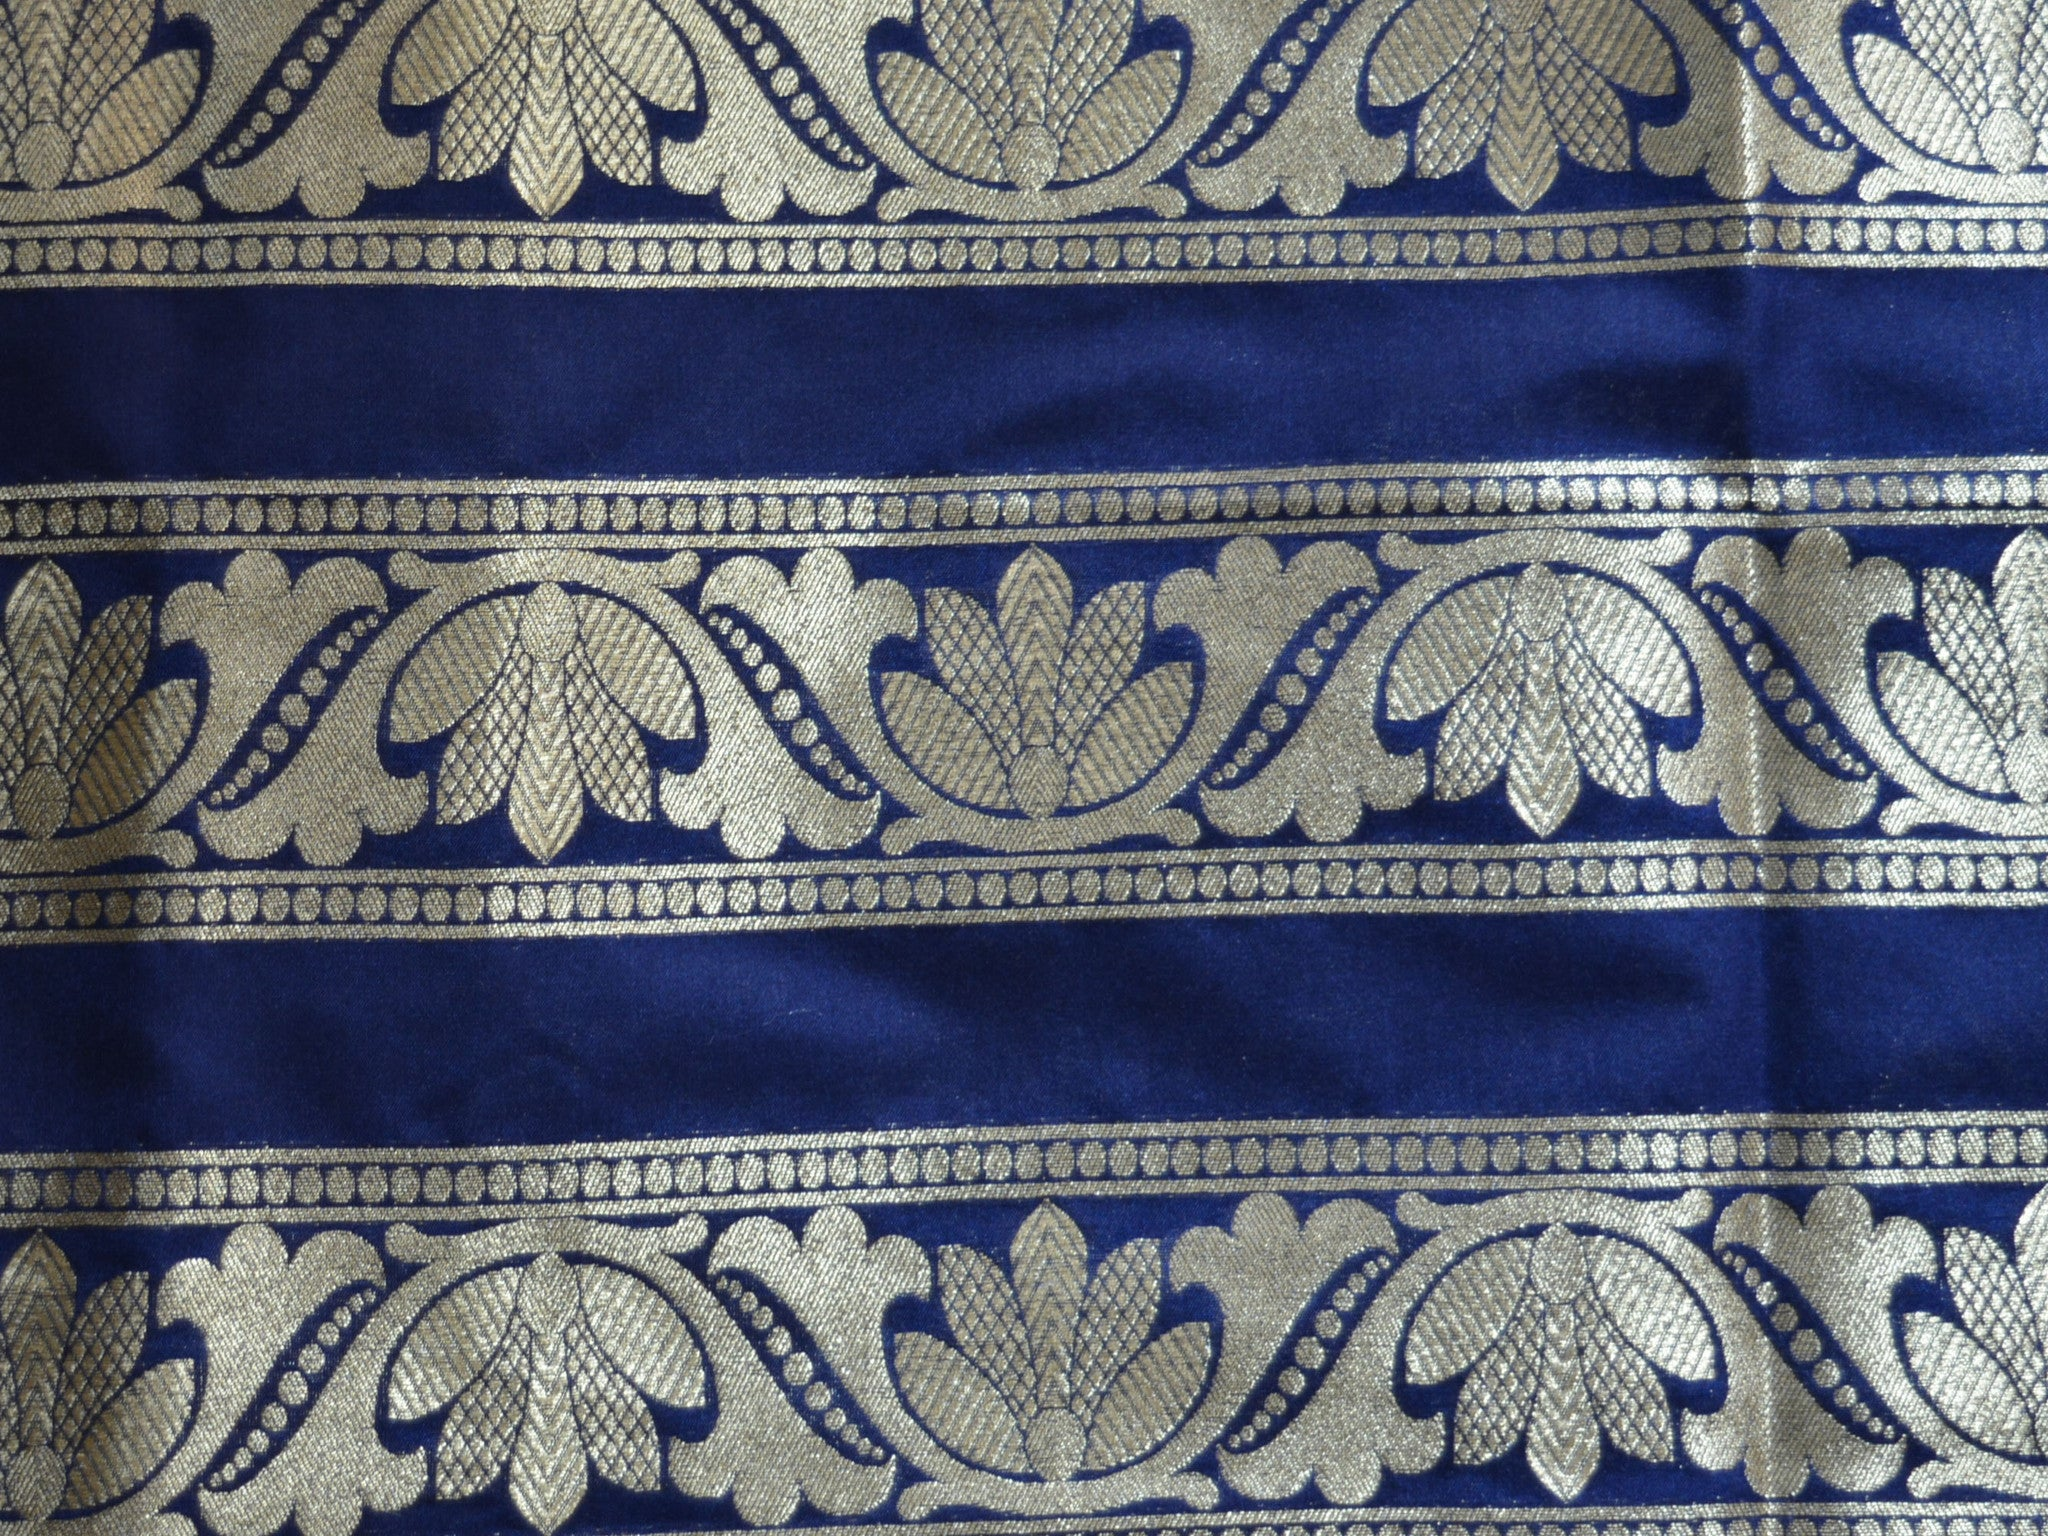 Banarasee/Banarasi Handwoven Art Silk Unstitched Lehenga & Blouse Fabric-Deep Blue